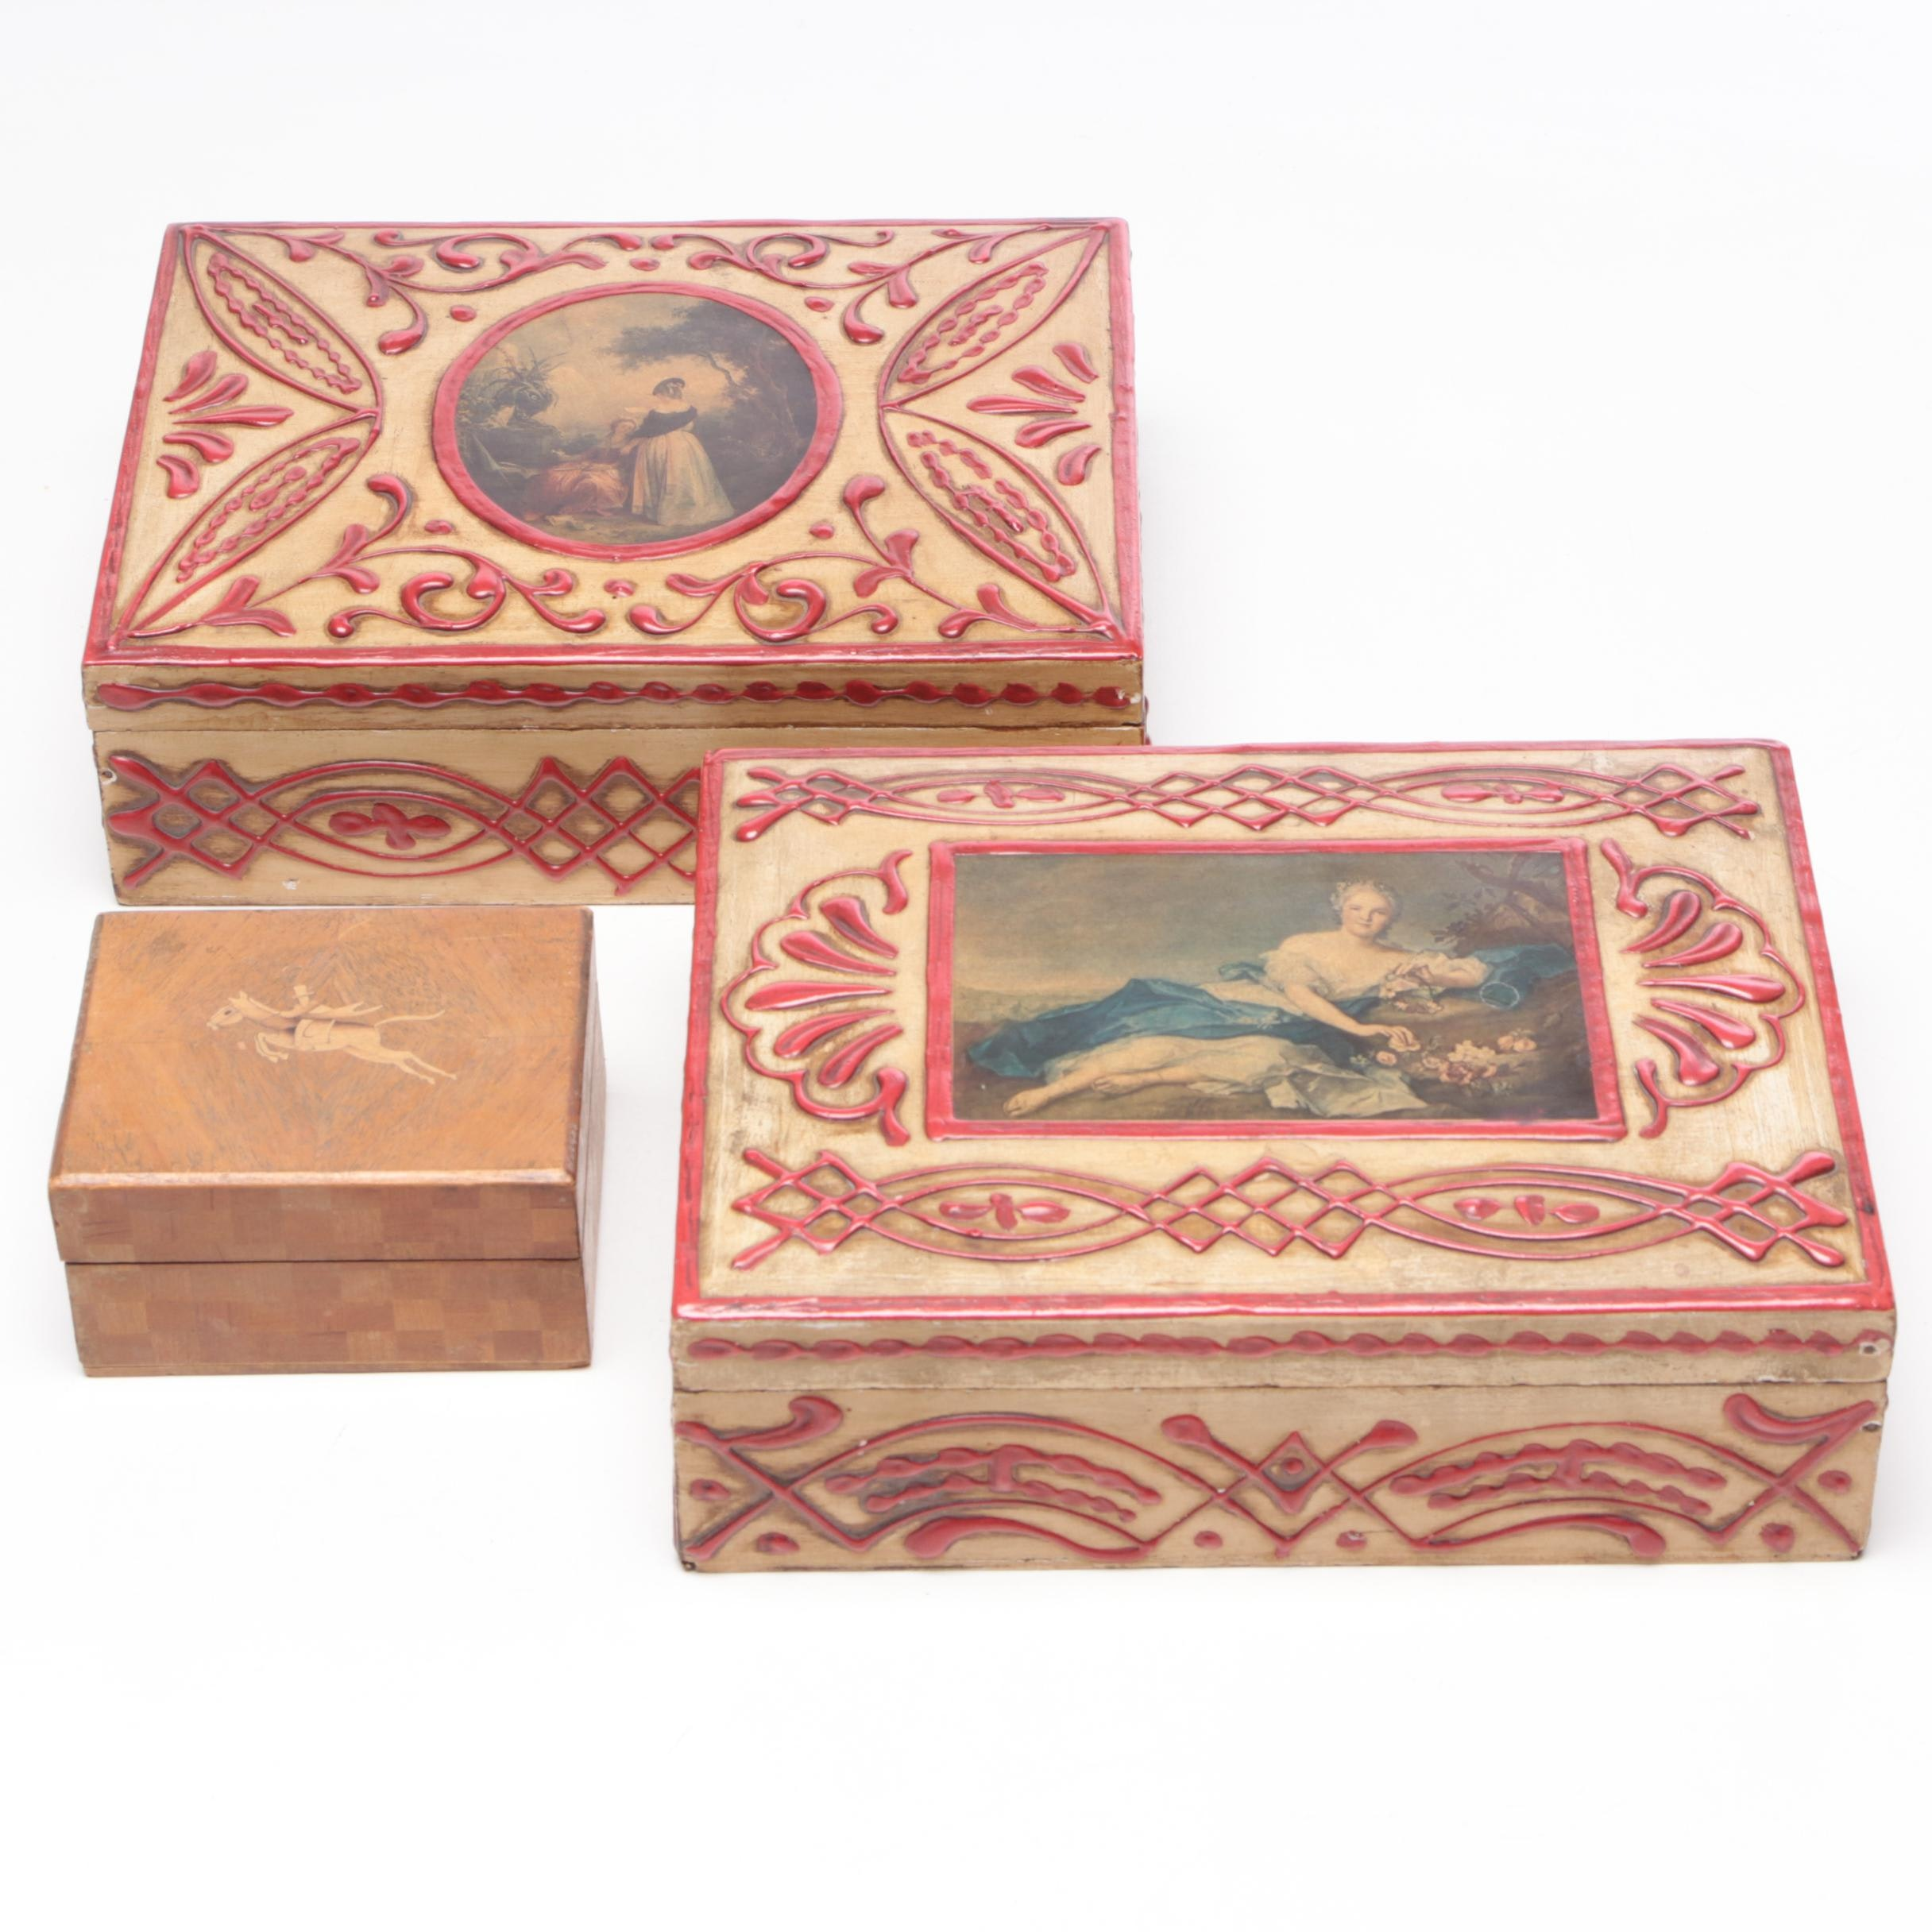 Decorated and Etched Wooden Cigar and Trinket Boxes, 20th Century